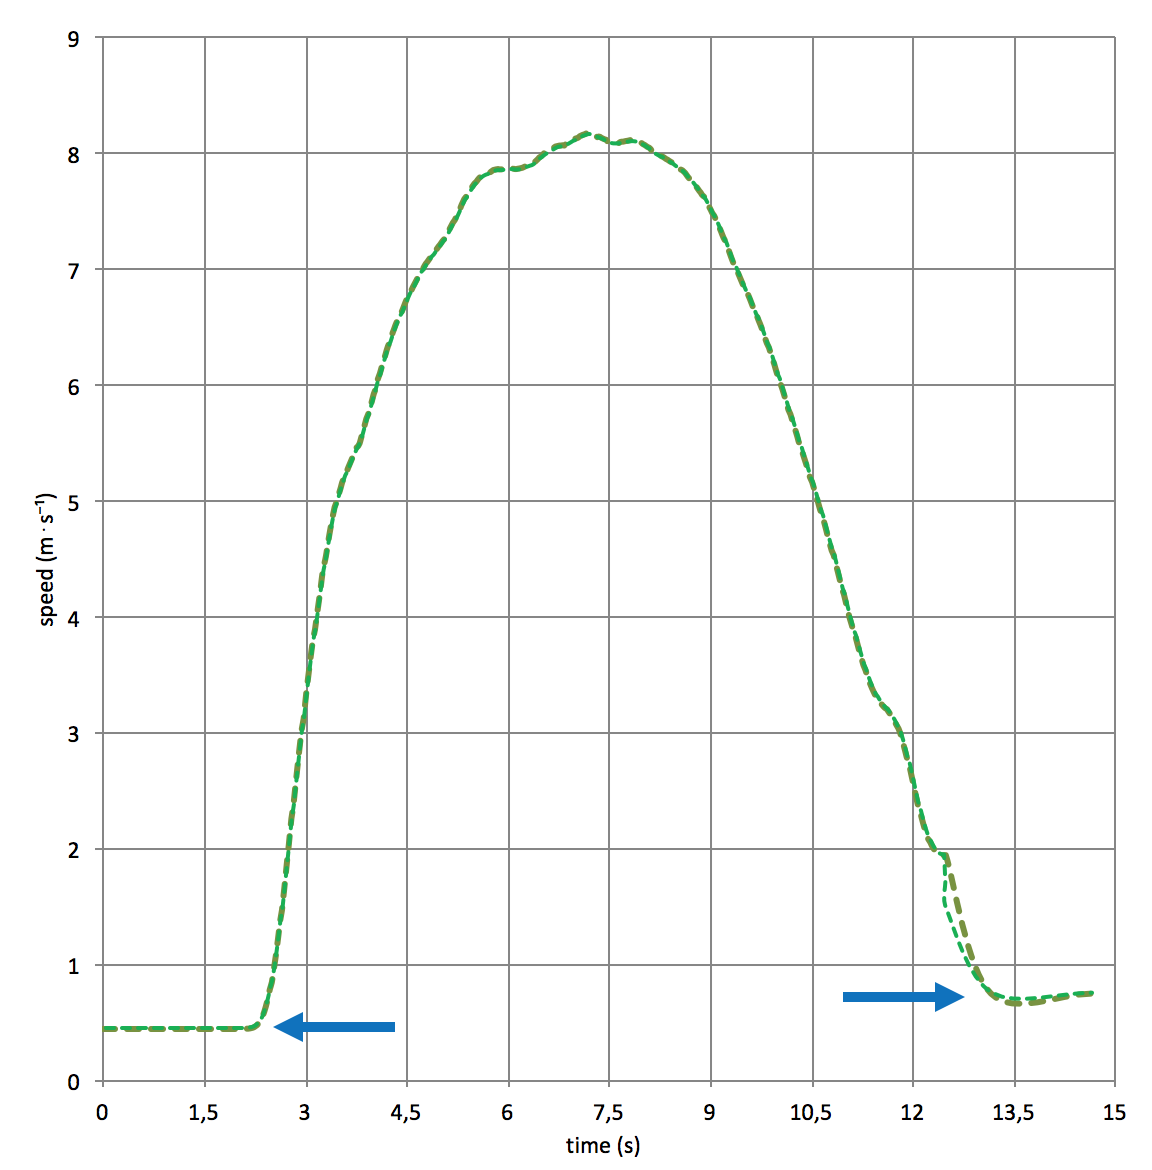 the-radars-filtered-speed-was-down-sampled-at-the-same-sampling-frequency-of-the-gps-gpexe